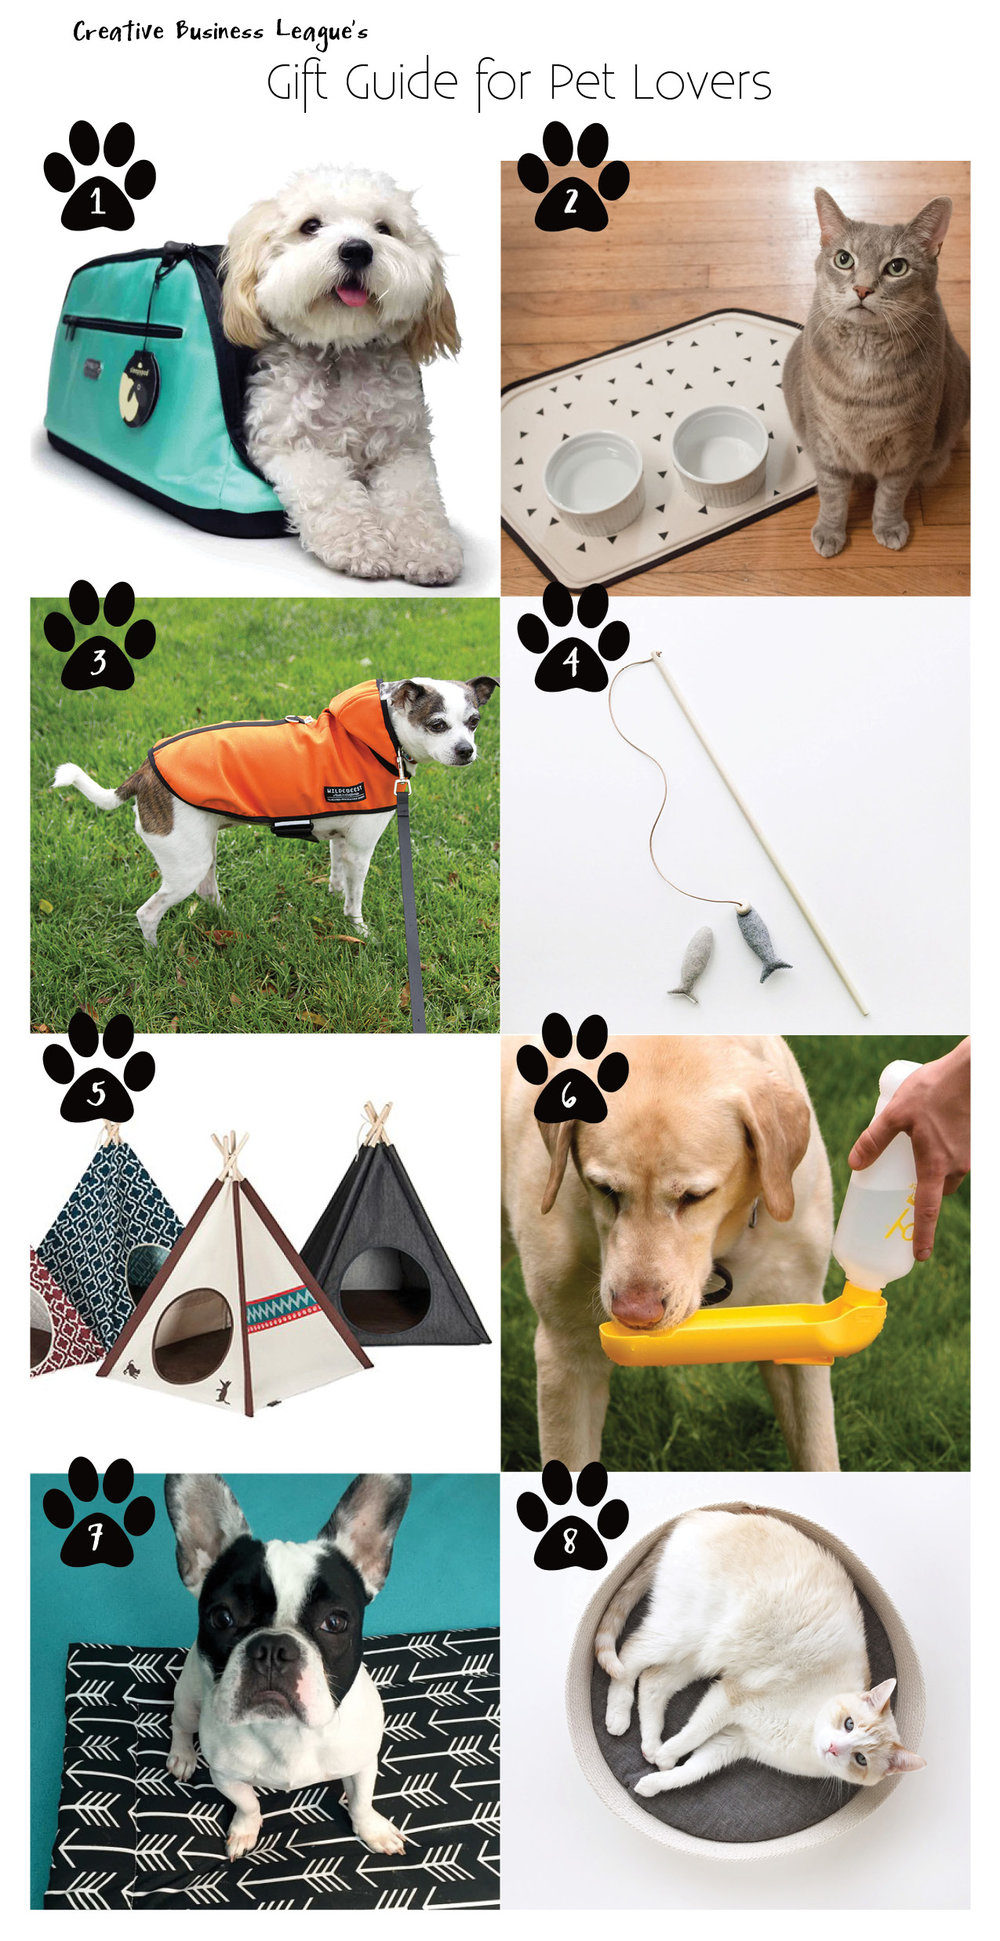 cbl_gift_guide_pet_lovers